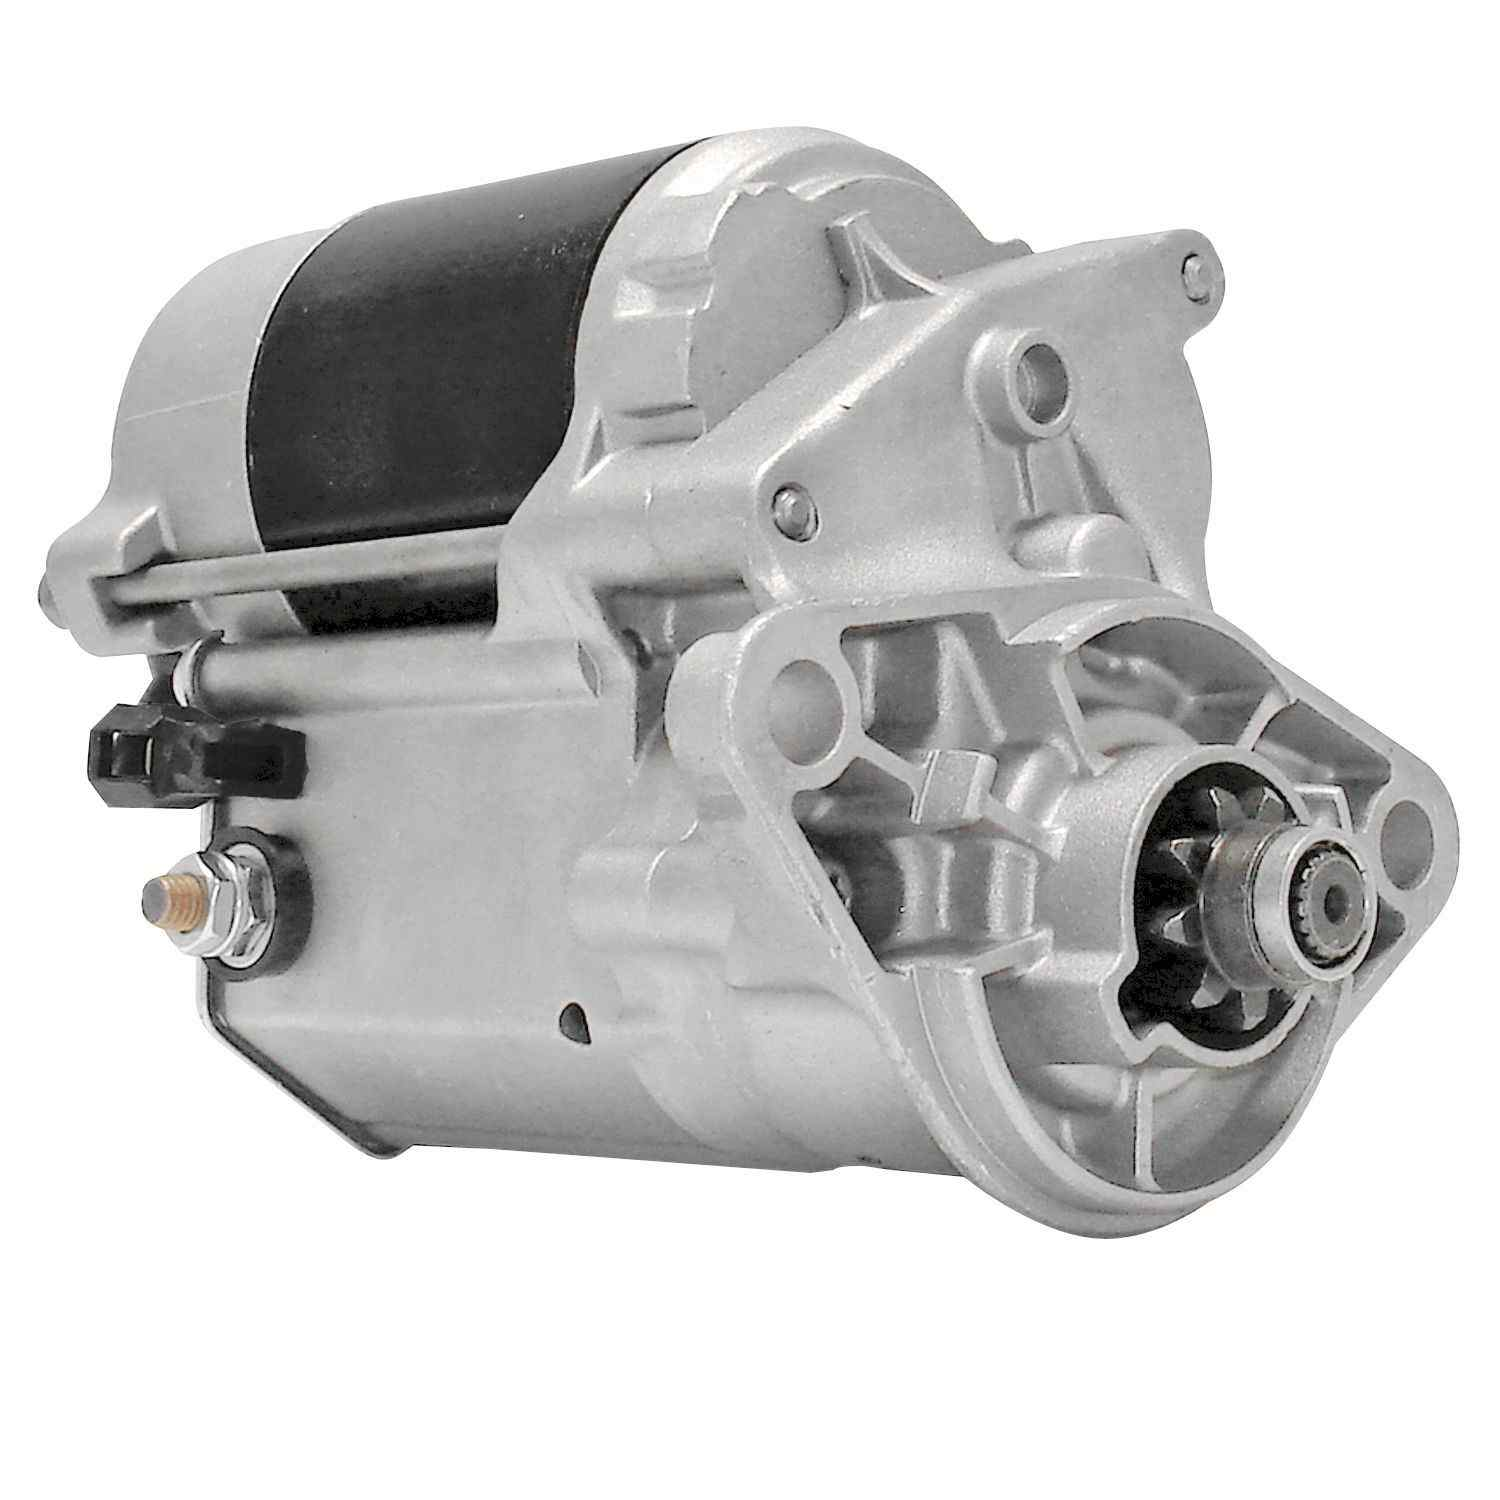 ACDELCO GOLD/PROFESSIONAL - Reman Starter Motor - DCC 336-1421